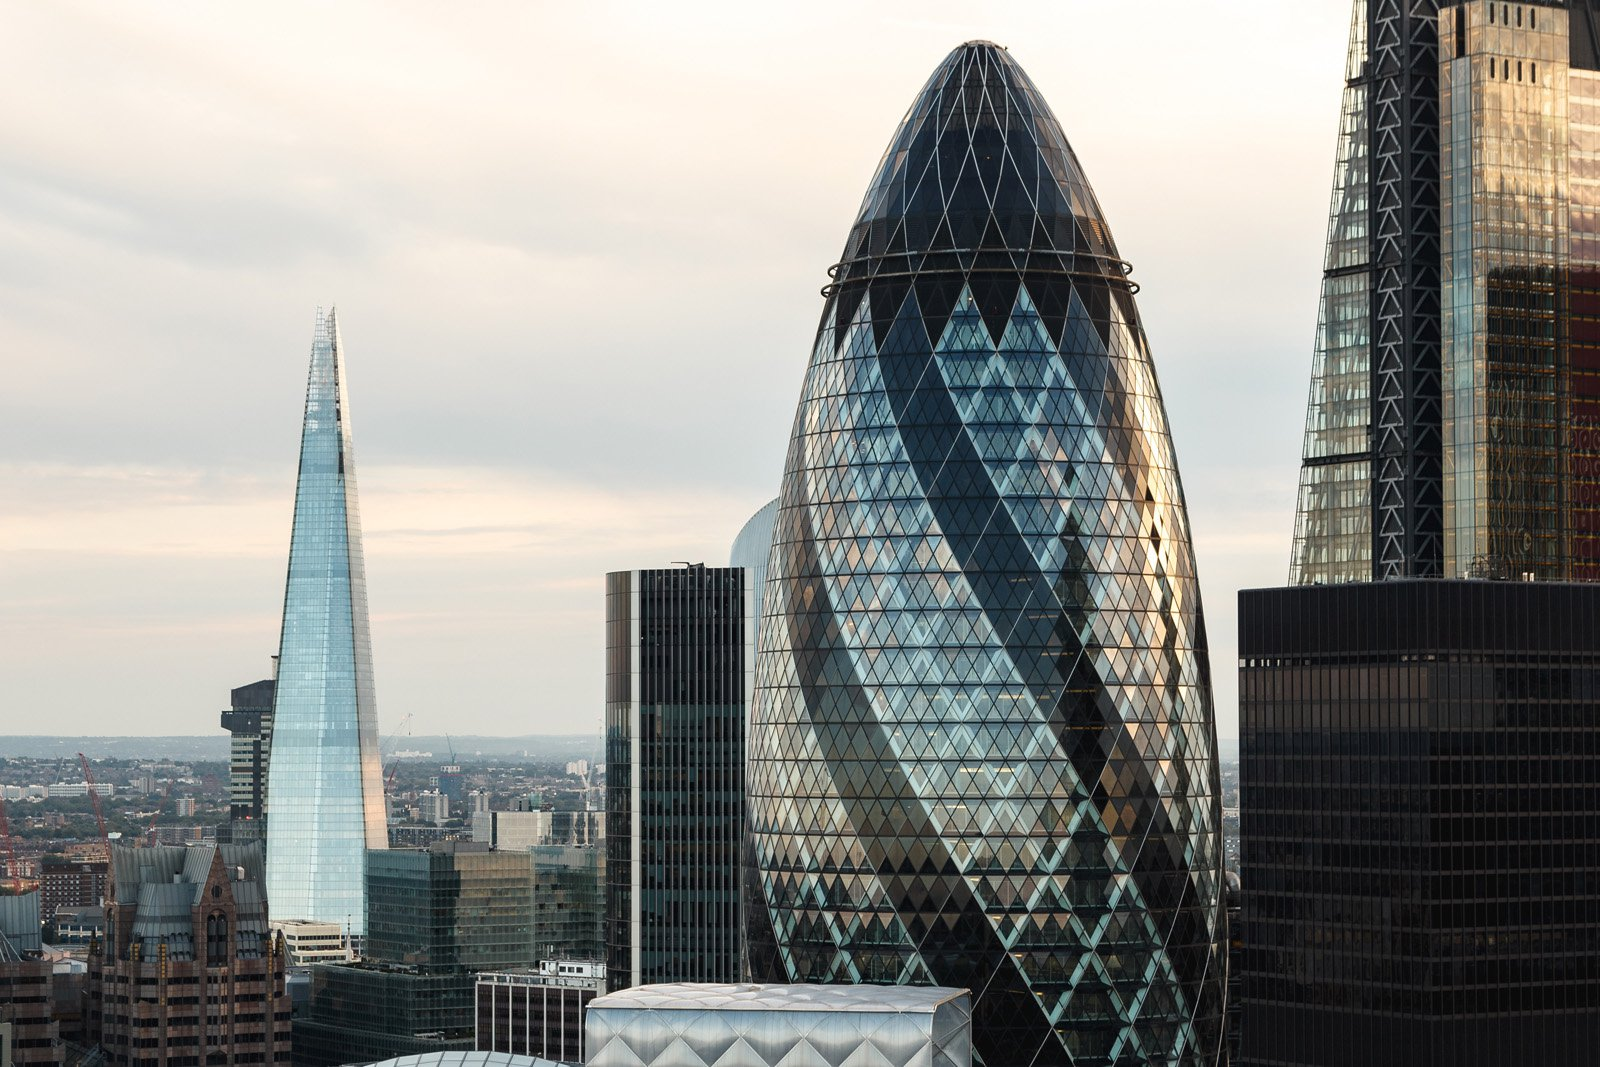 Entrepreneurial Ecosystems Article: Image of the Gherkin, London